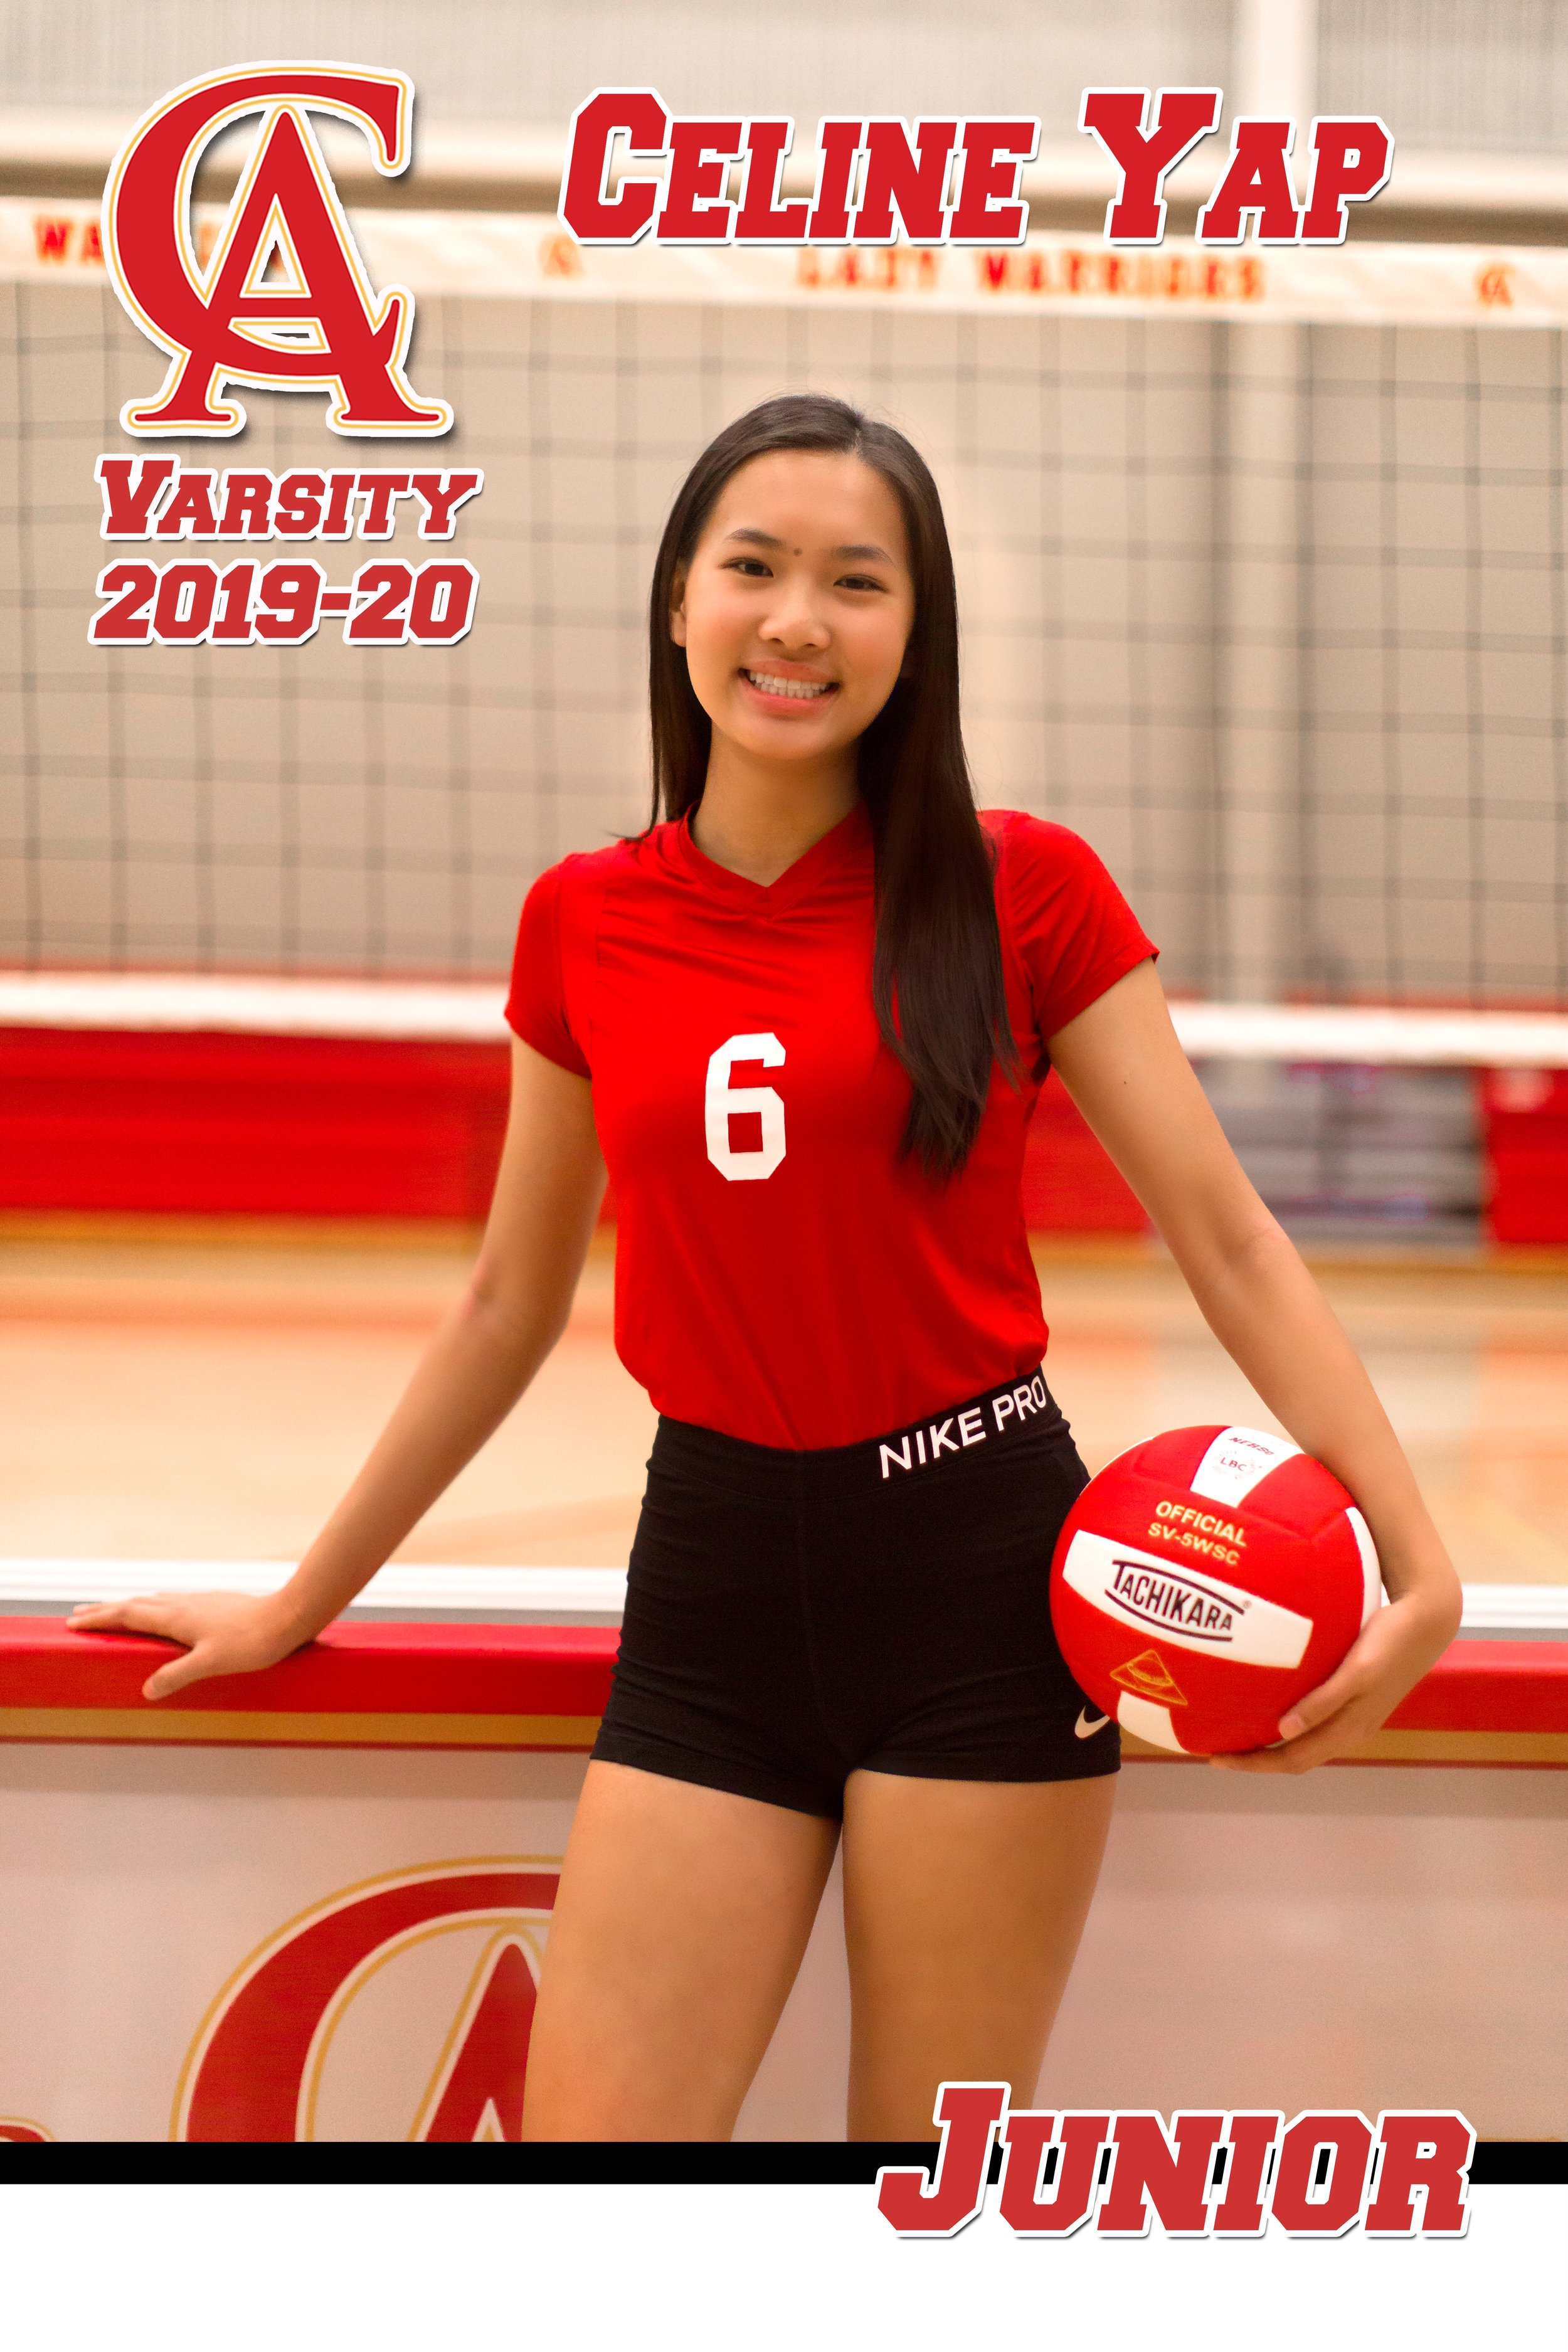 celine-yap-christ-academy-player-week.jpg